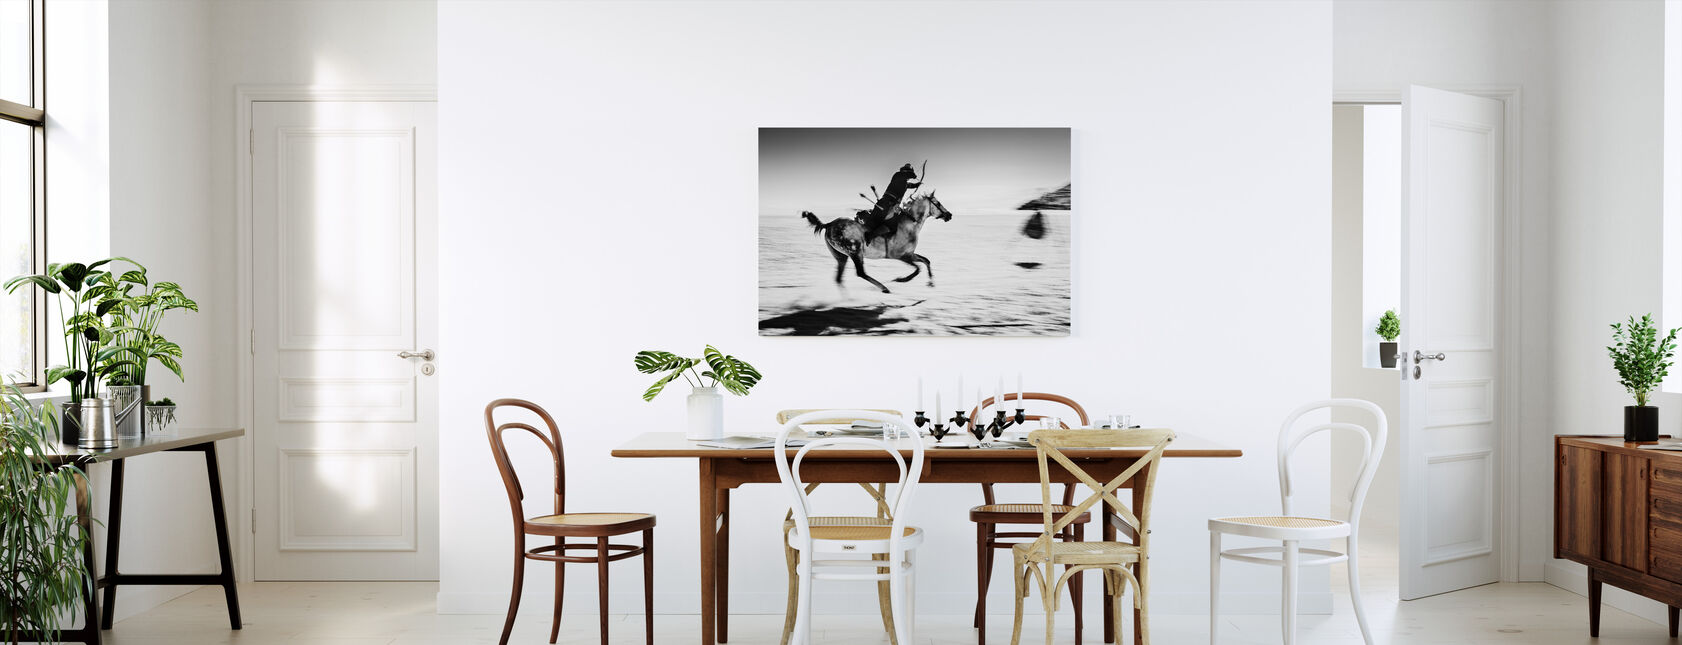 Galopping Horse and Bowman, black and white - Canvas print - Kitchen